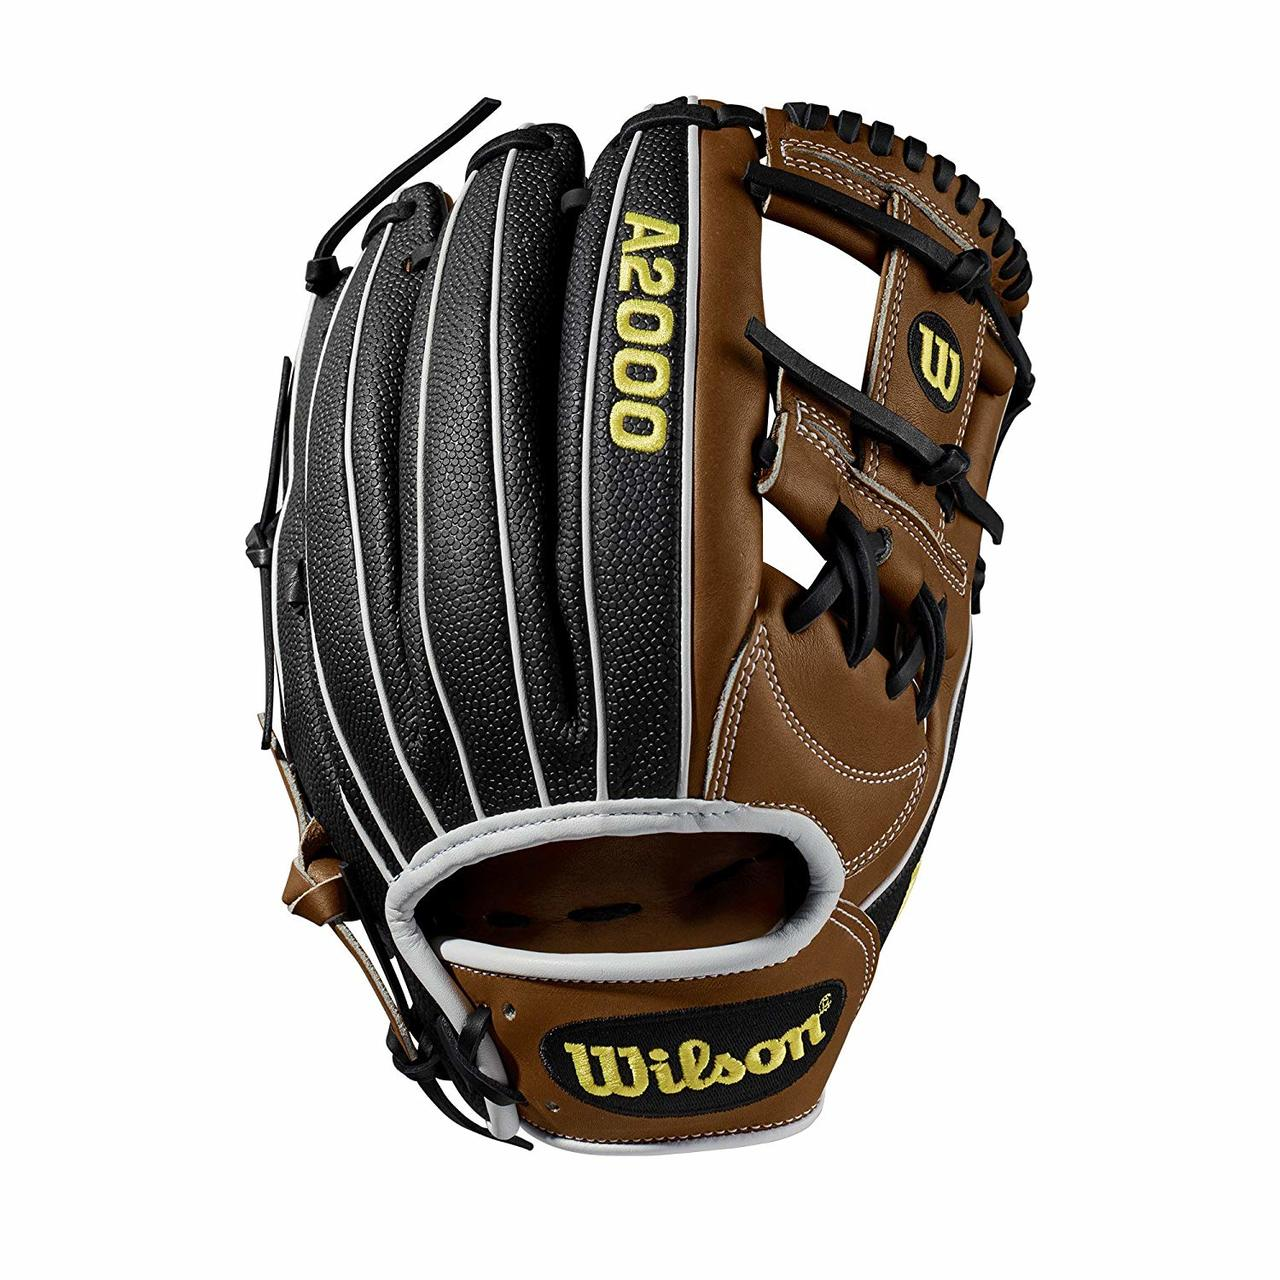 wilson-a2000-1787ss-11-75-baseball-glove-2019-right-hand-throw WTA20RB191787SS-RightHandThrow  887768701949 nfield model; H-Web Double lacing at the base of the web